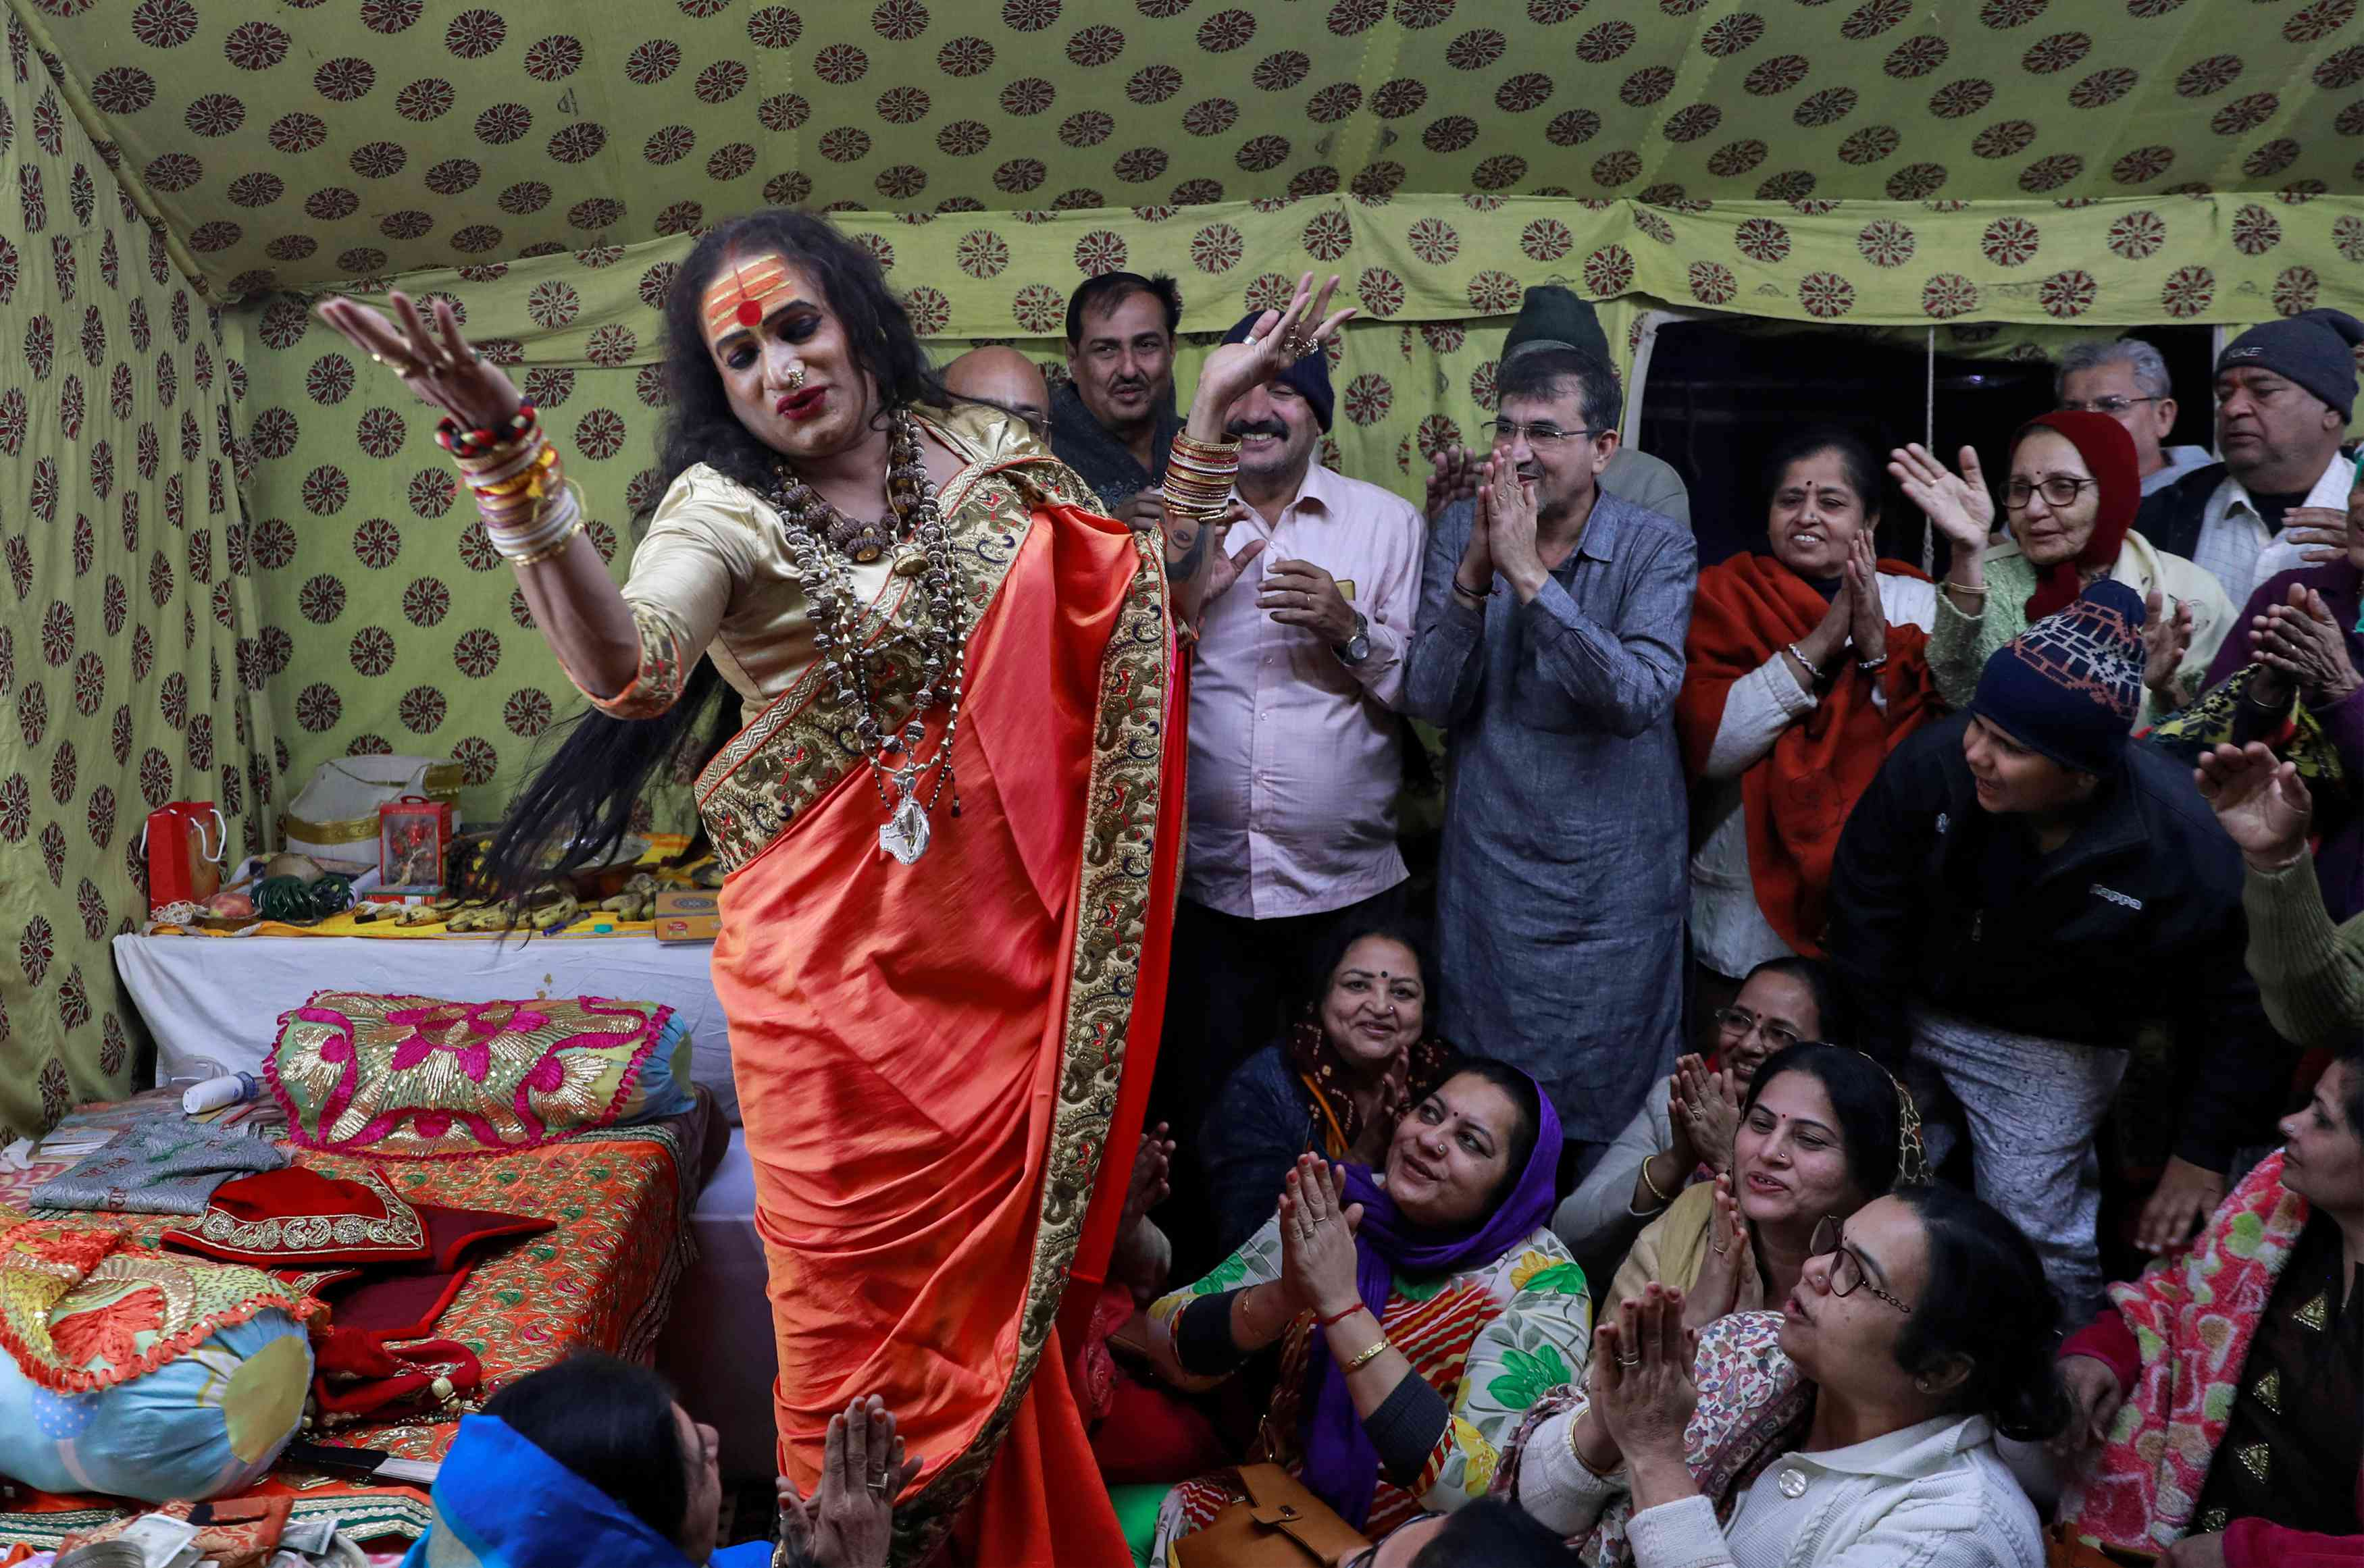 Lakshmi Narayan Tripathi, chief of the Kinnar Akhara, sings with her followers during on Monday. Credit: Danish Siddiqui/Reuters